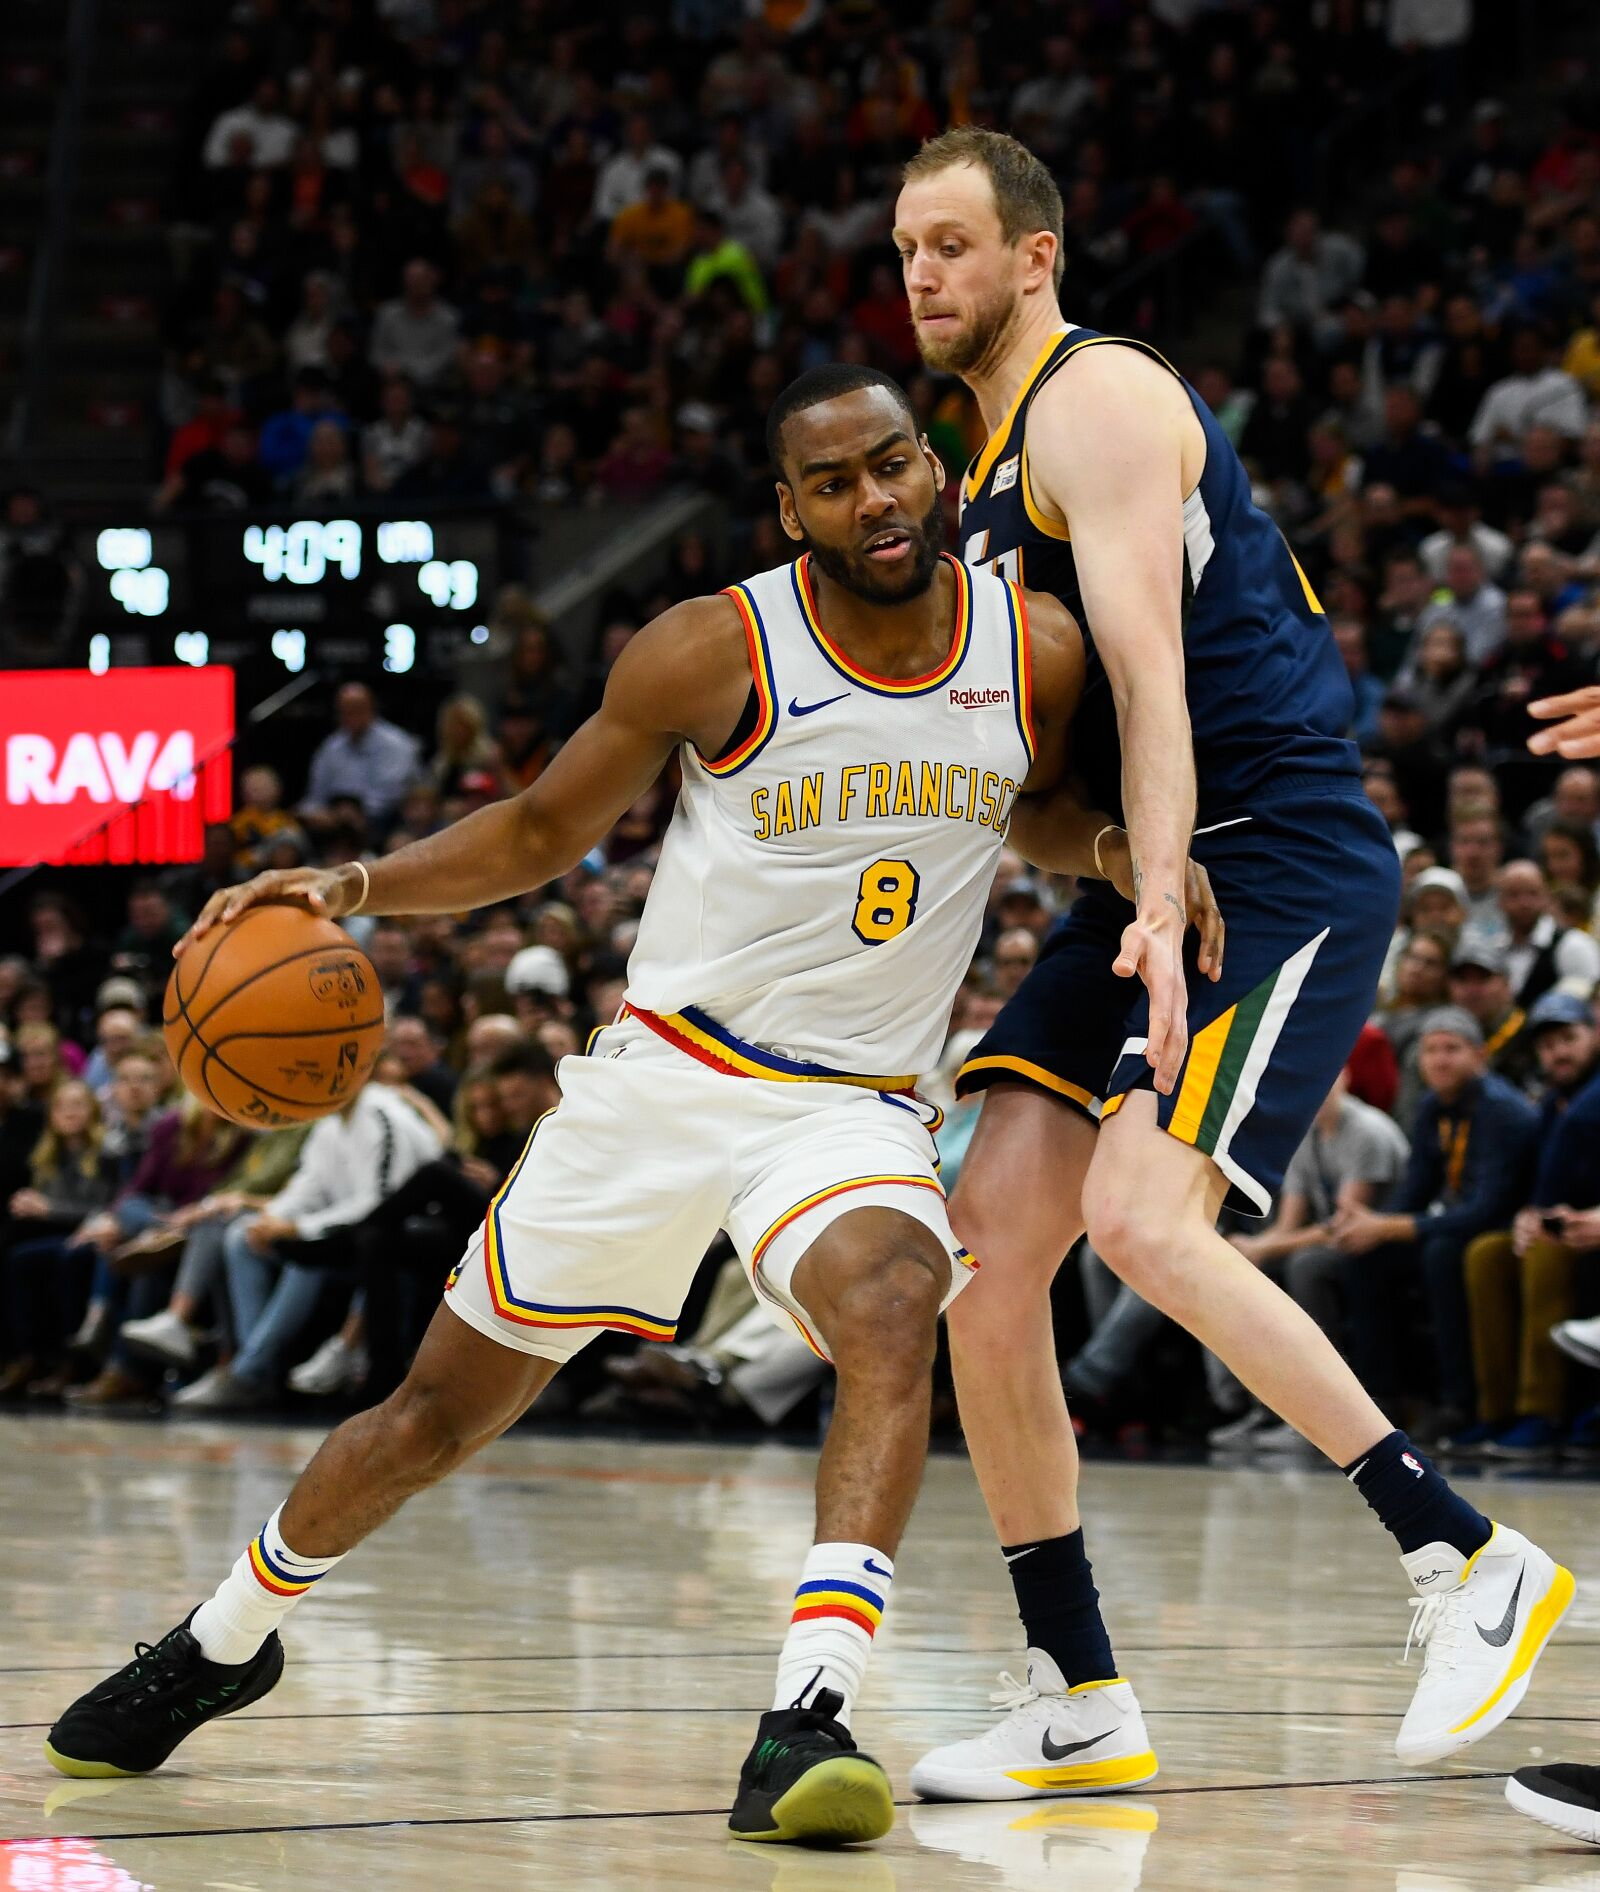 Game thread: Utah Jazz take on dismantled Warriors one last time